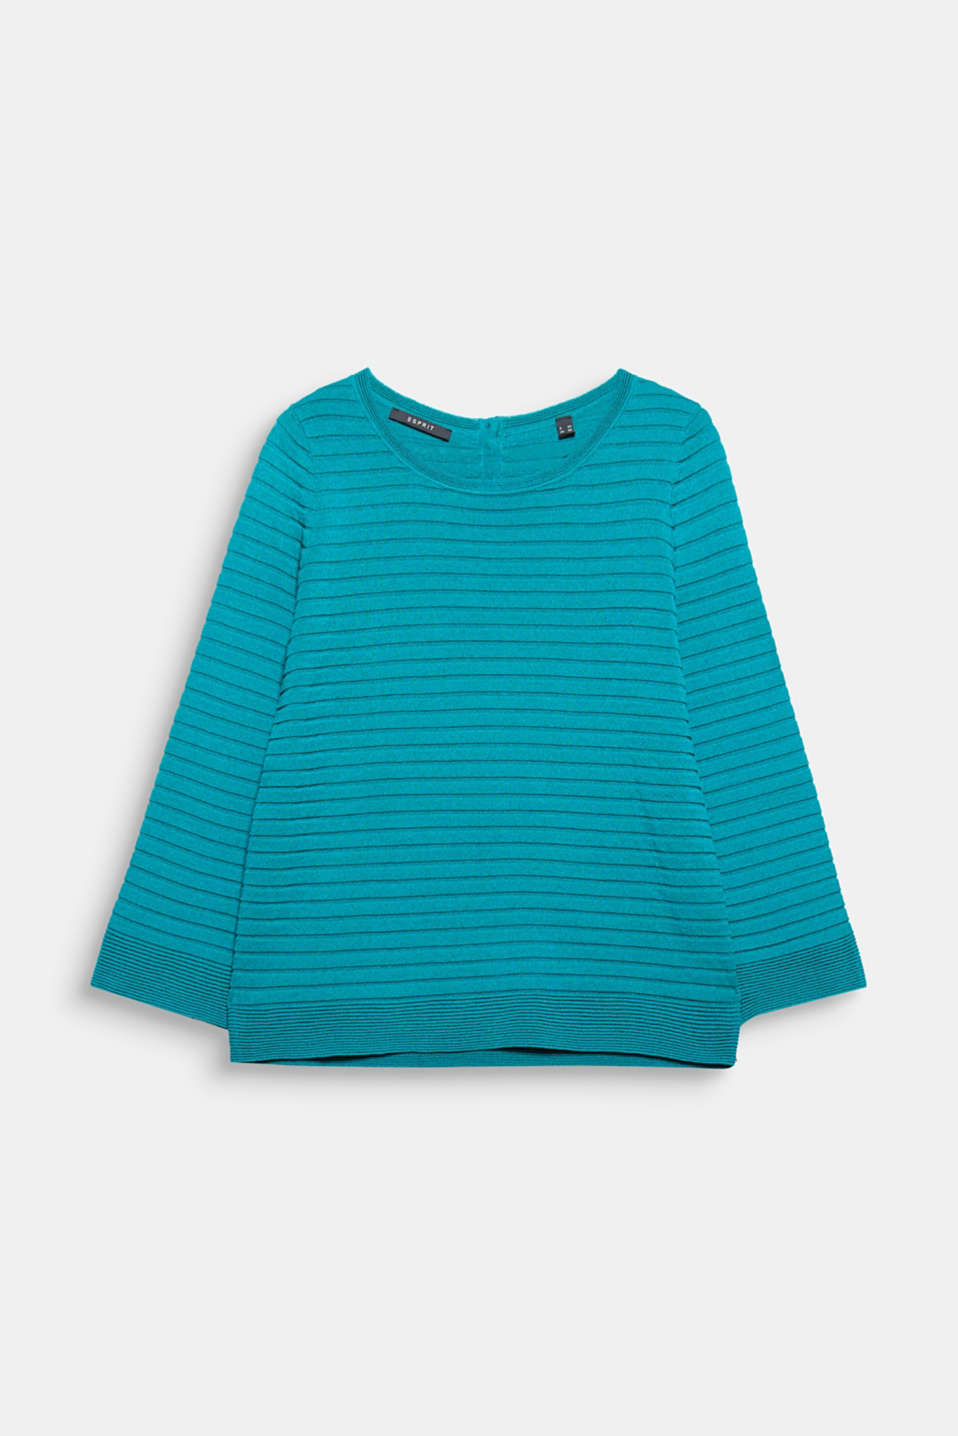 This jumper is bang up to date, with a ribbed texture, a button placket at the back and flared sleeves!